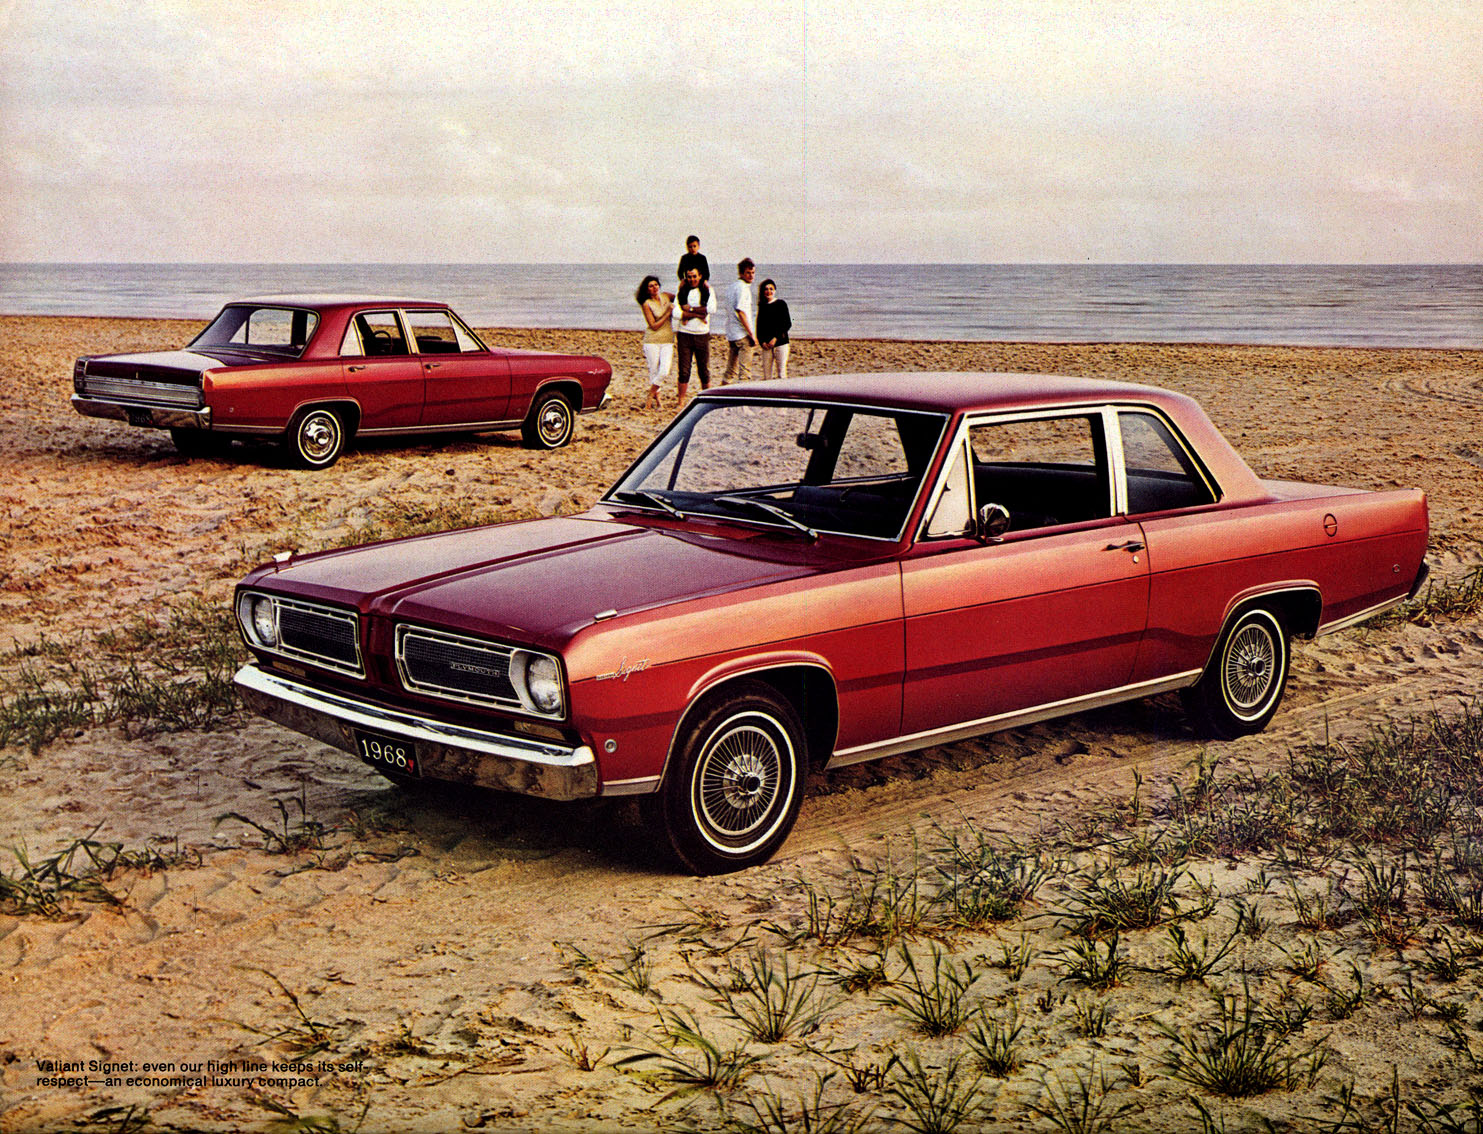 1968 plymouth valiant plymouth car brochures pinterest plymouth american classic cars and cars